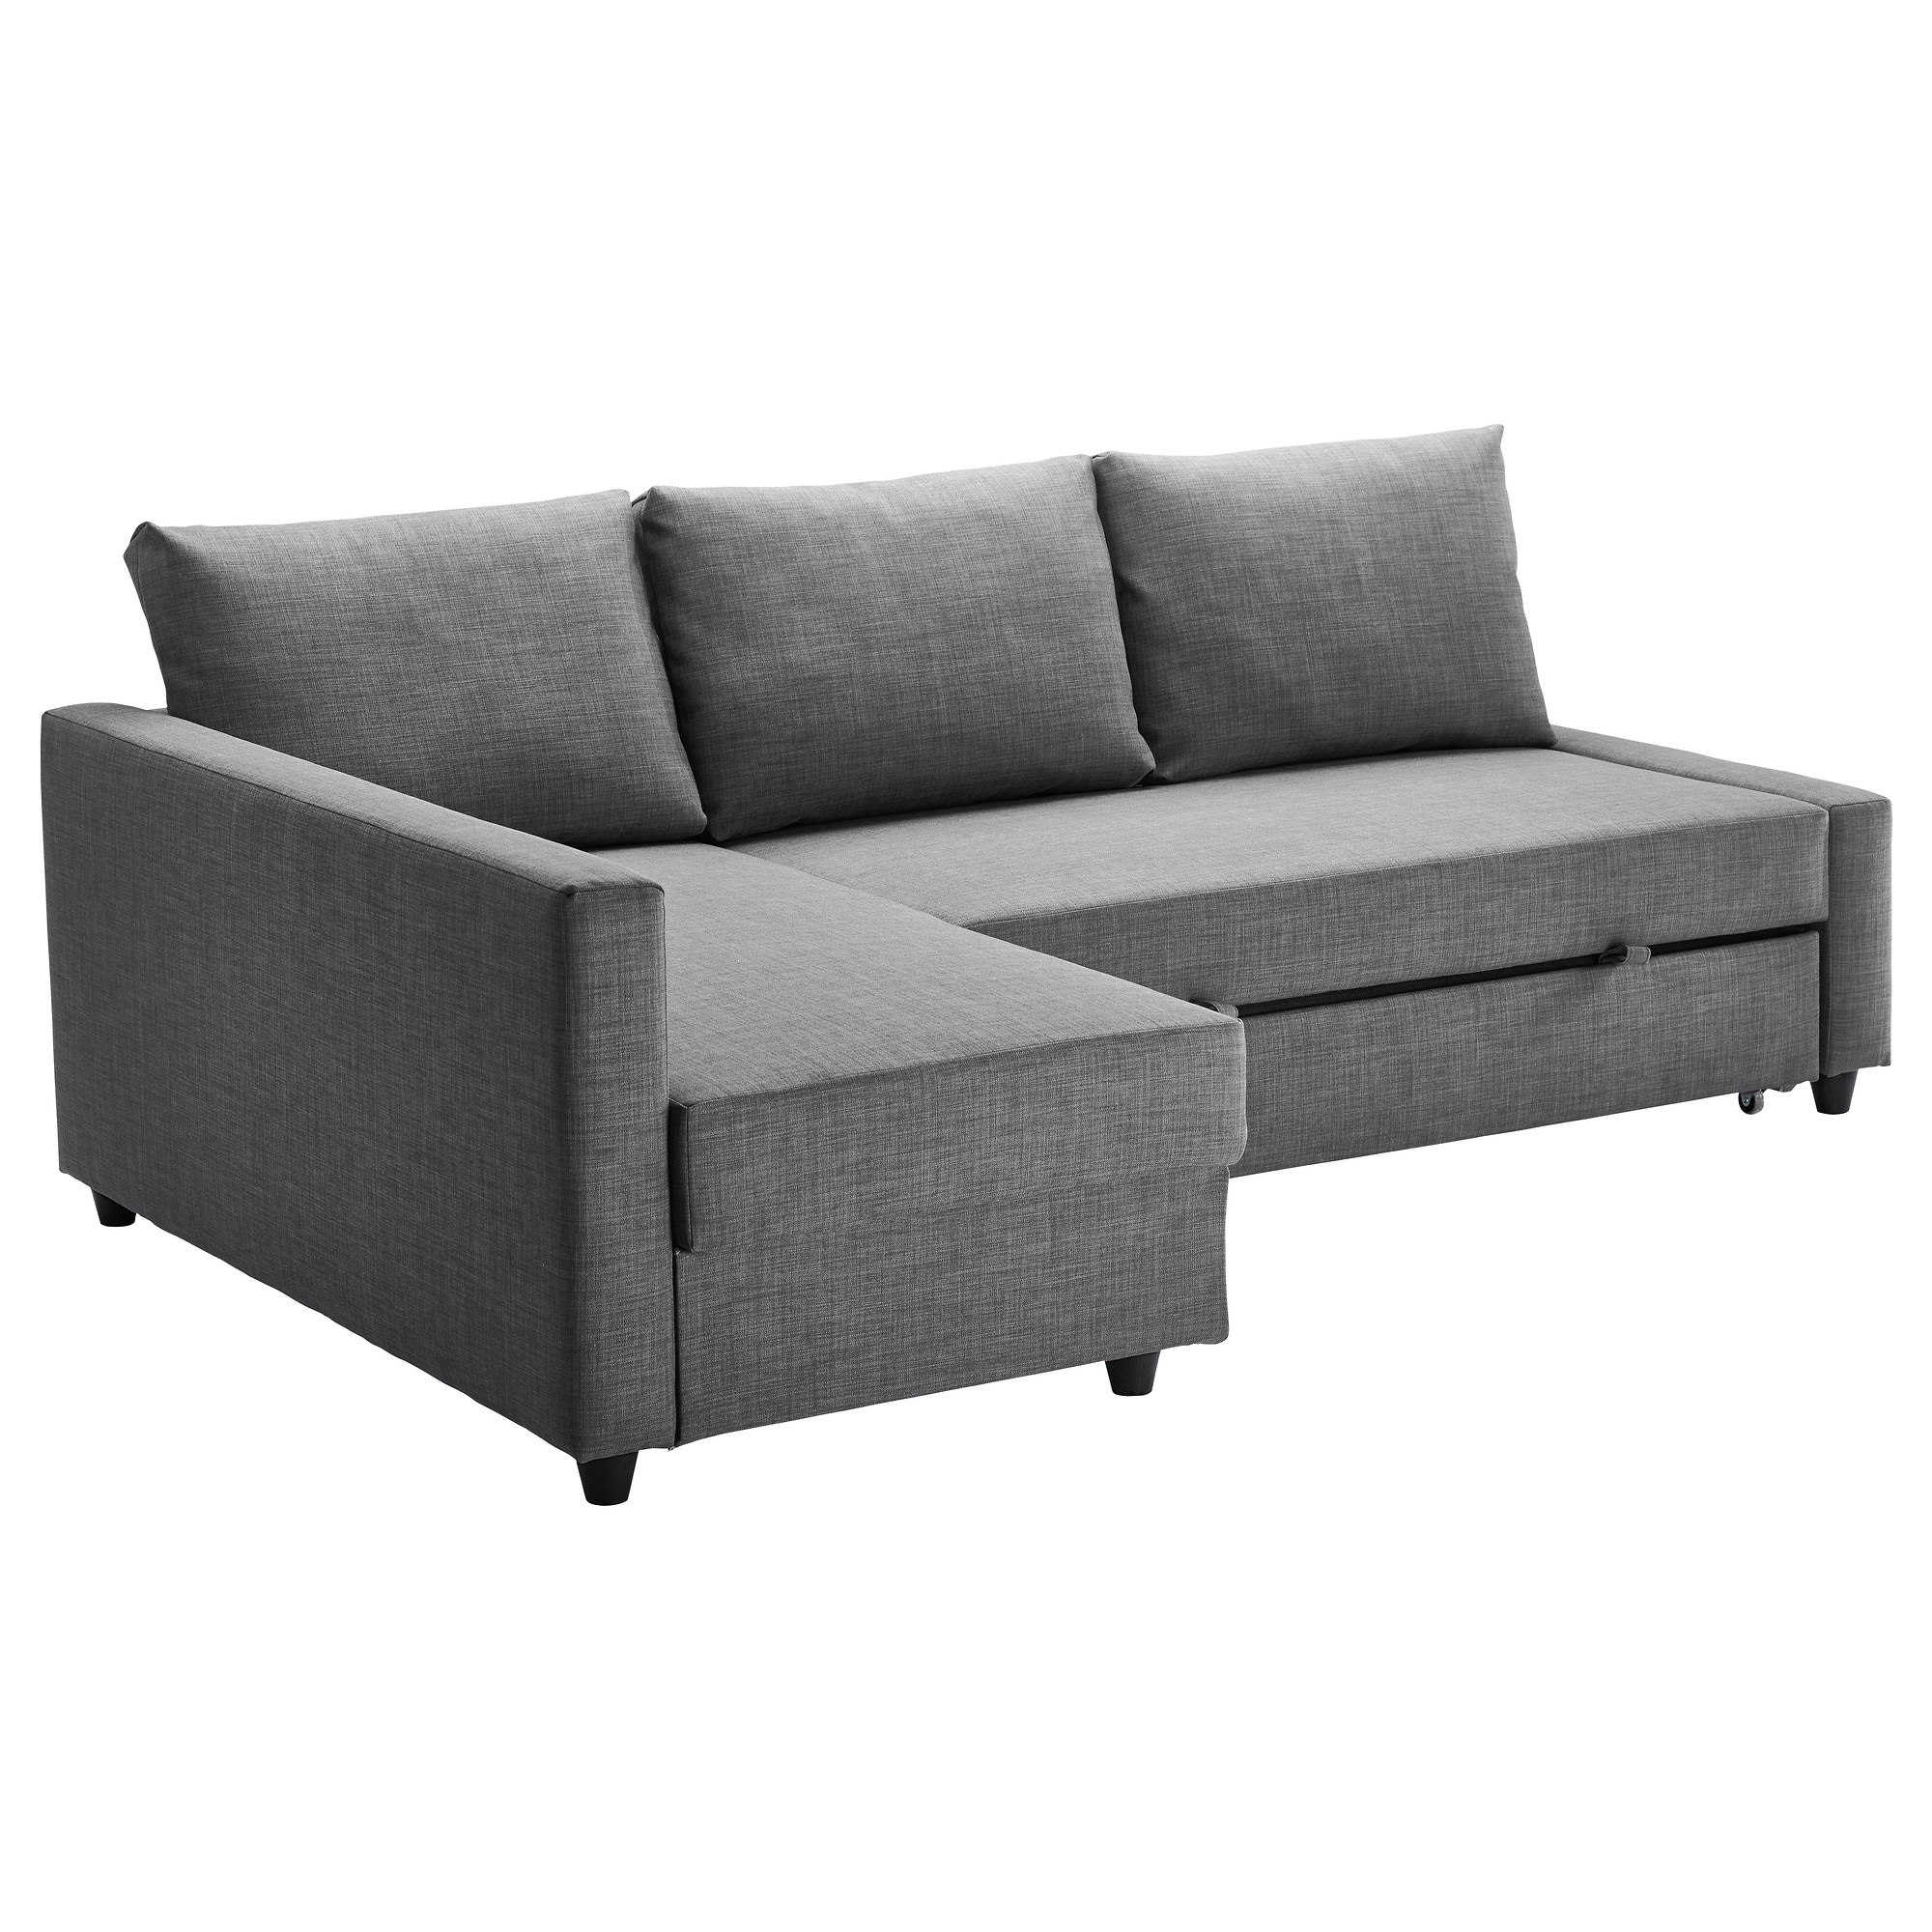 Sofa Cama Italiano Ikea Q5df Friheten Corner sofa Bed with Storage Skiftebo Dark Grey Ikea